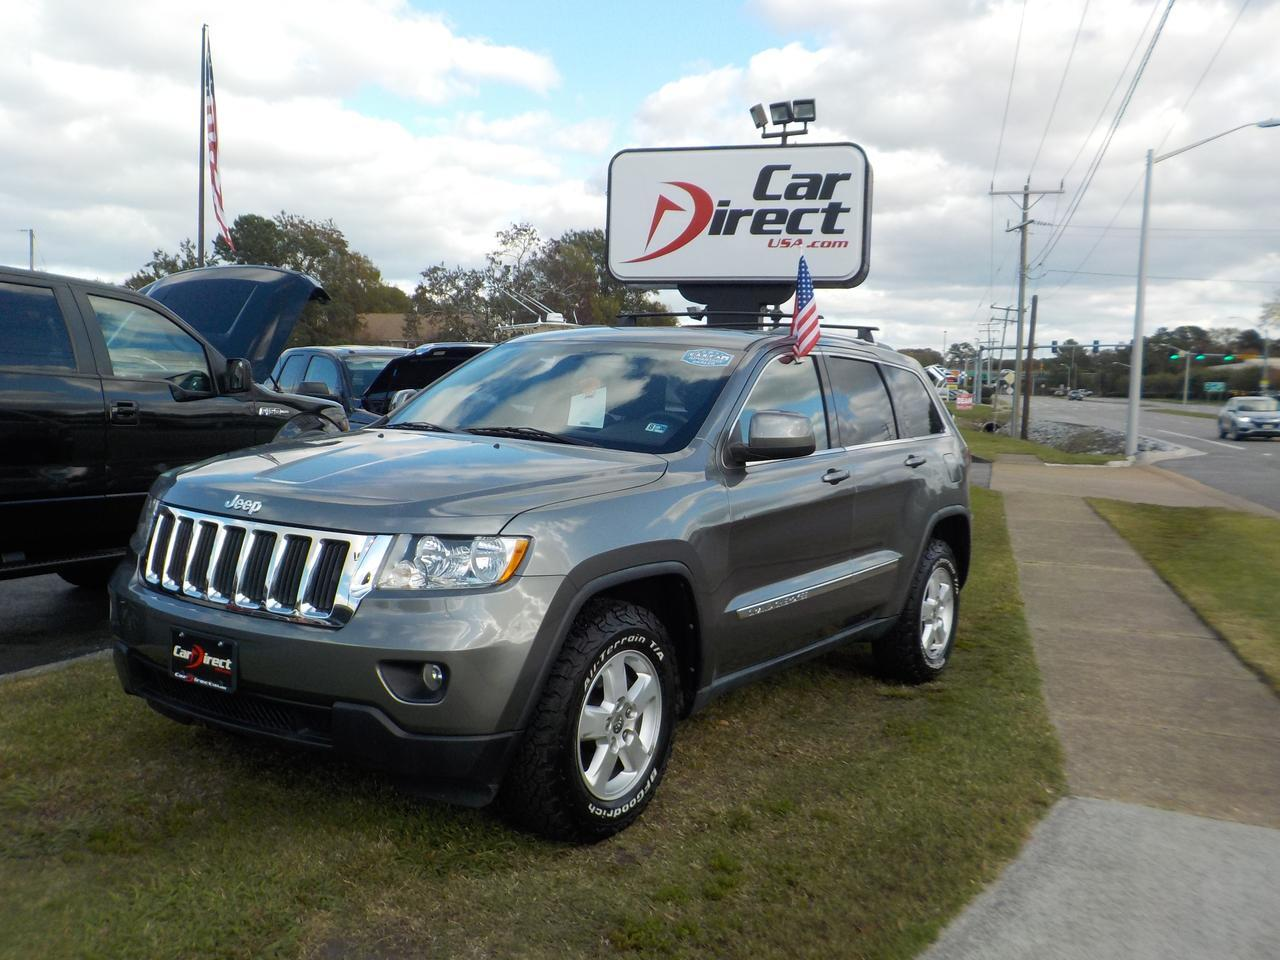 2011 JEEP GRAND CHEROKEE LAREDO 4X4, WARRANTY, KEYLESS START, ROOF RACKS, GREAT CONDITION & EXTRA CLEAN!